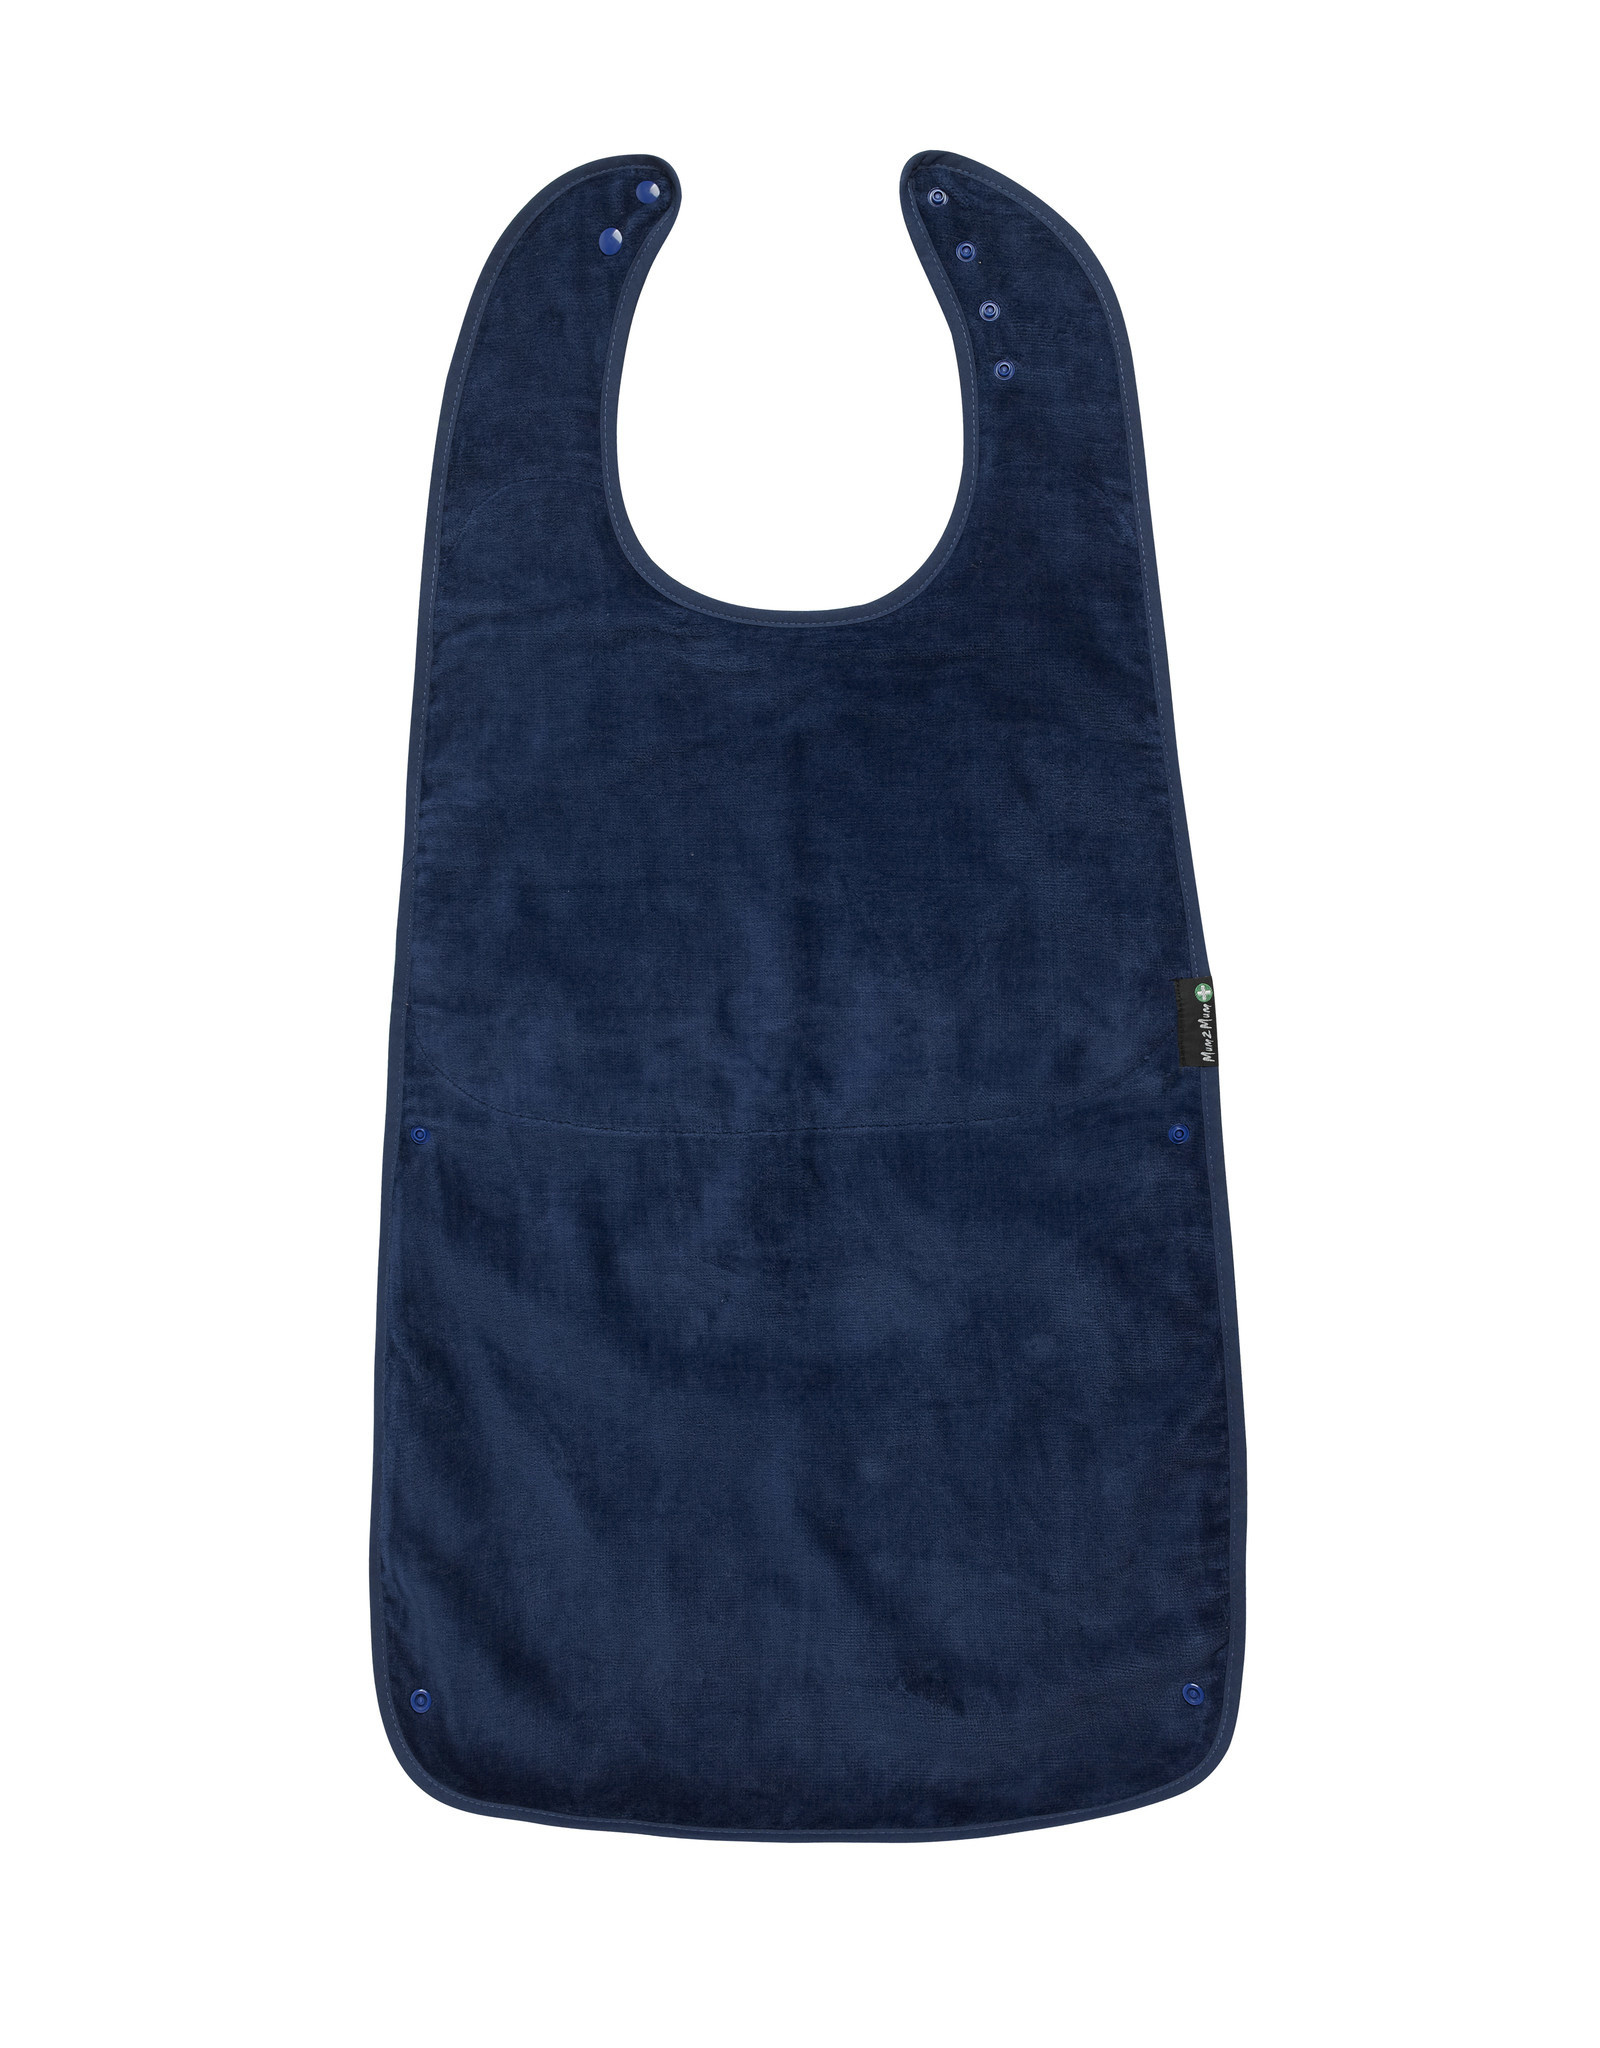 Mum2Mum Mum2Mum Plus Range Supersized Feeding Apron Navy